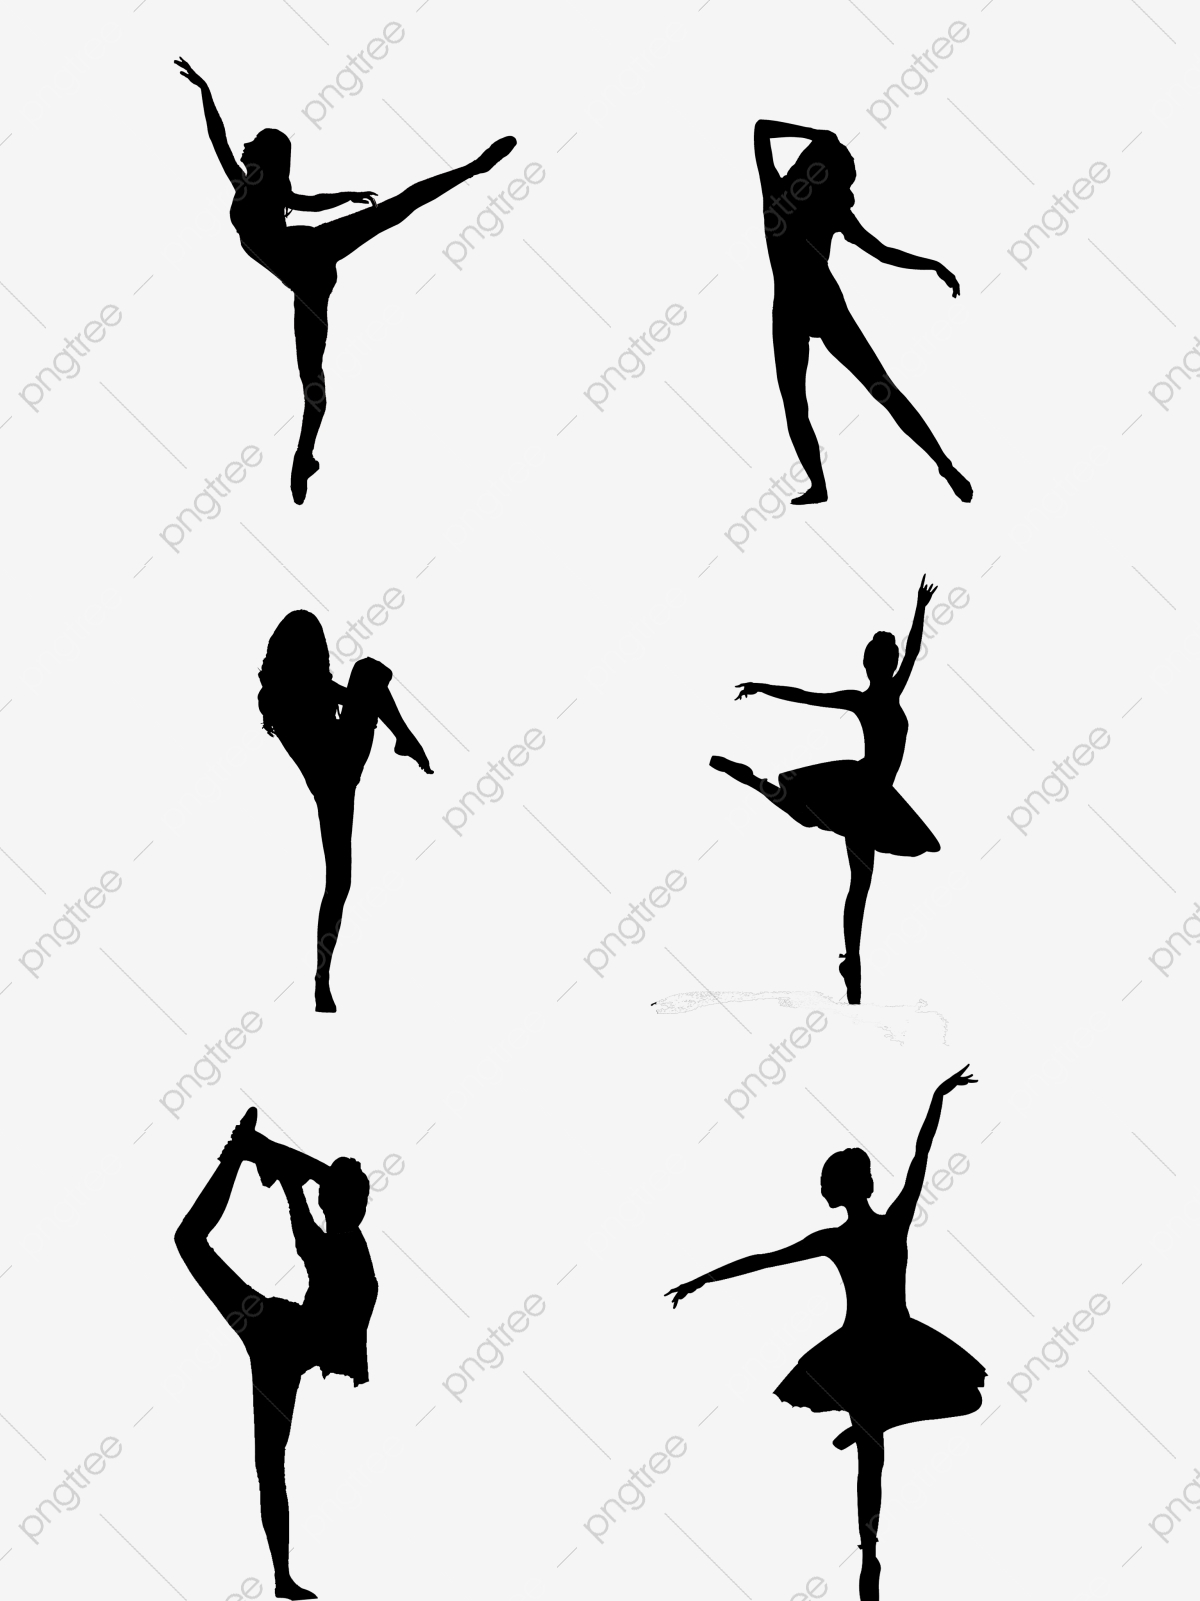 Black Female Dancing Silhouette Dancing Silhouette Female Png Transparent Clipart Image And Psd File For Free Download